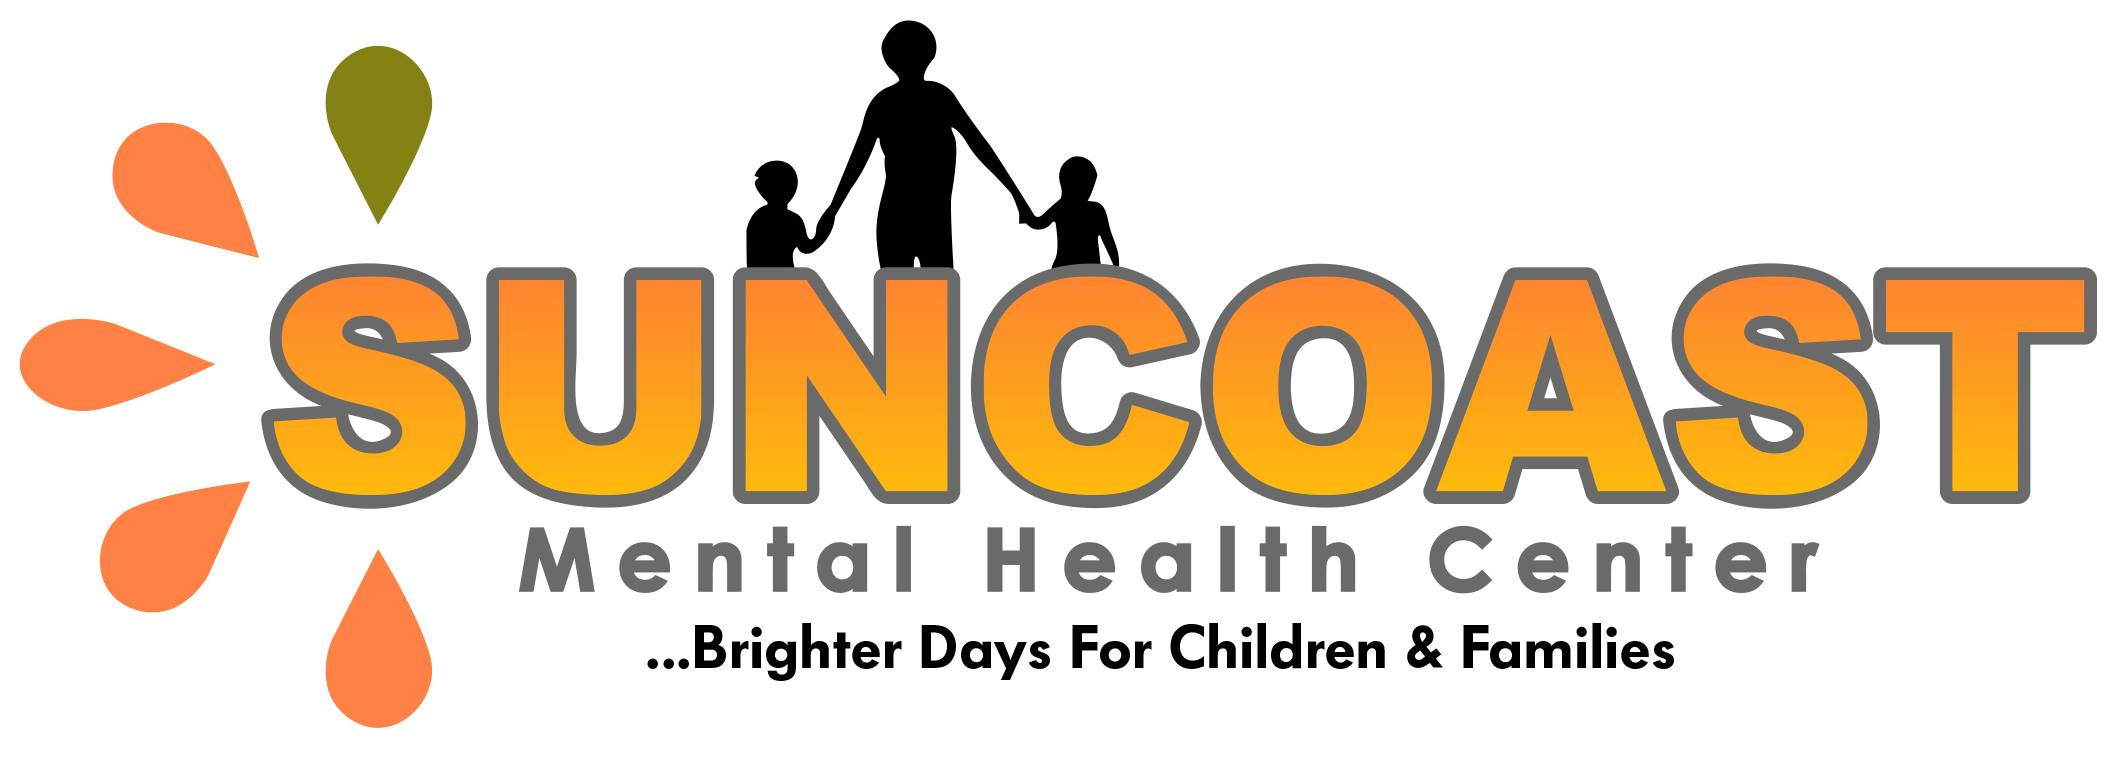 Suncoast Mental Health Center, Inc.